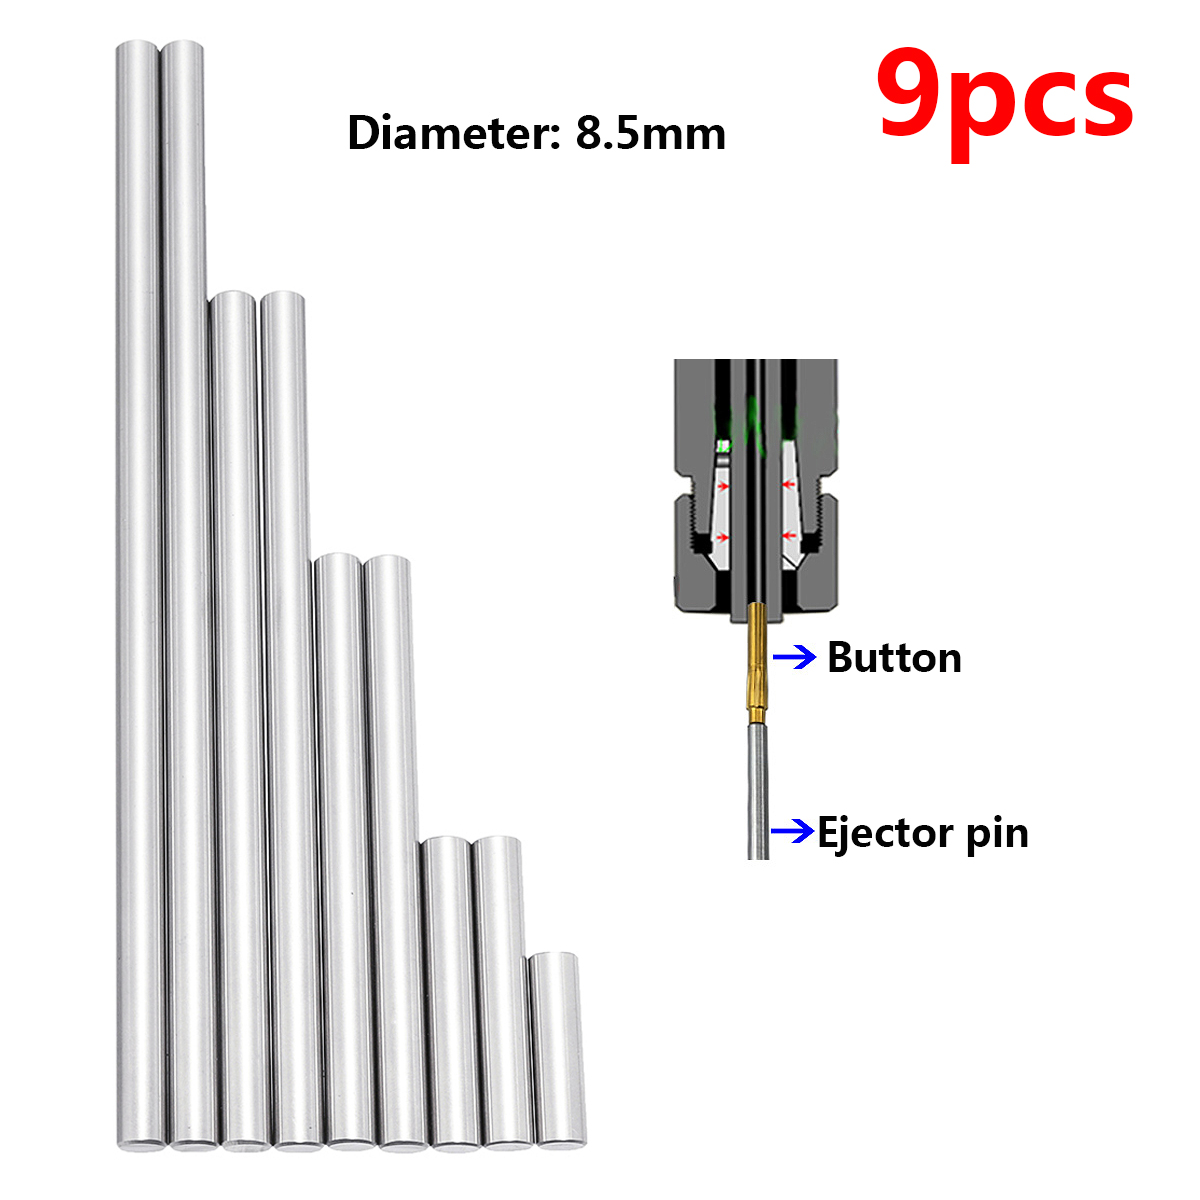 9pcs Ejector Pins Set Used To Push Rifling Buttons High Hardness Full Specifications Reamer Kits Machine Tools Accessories Parts